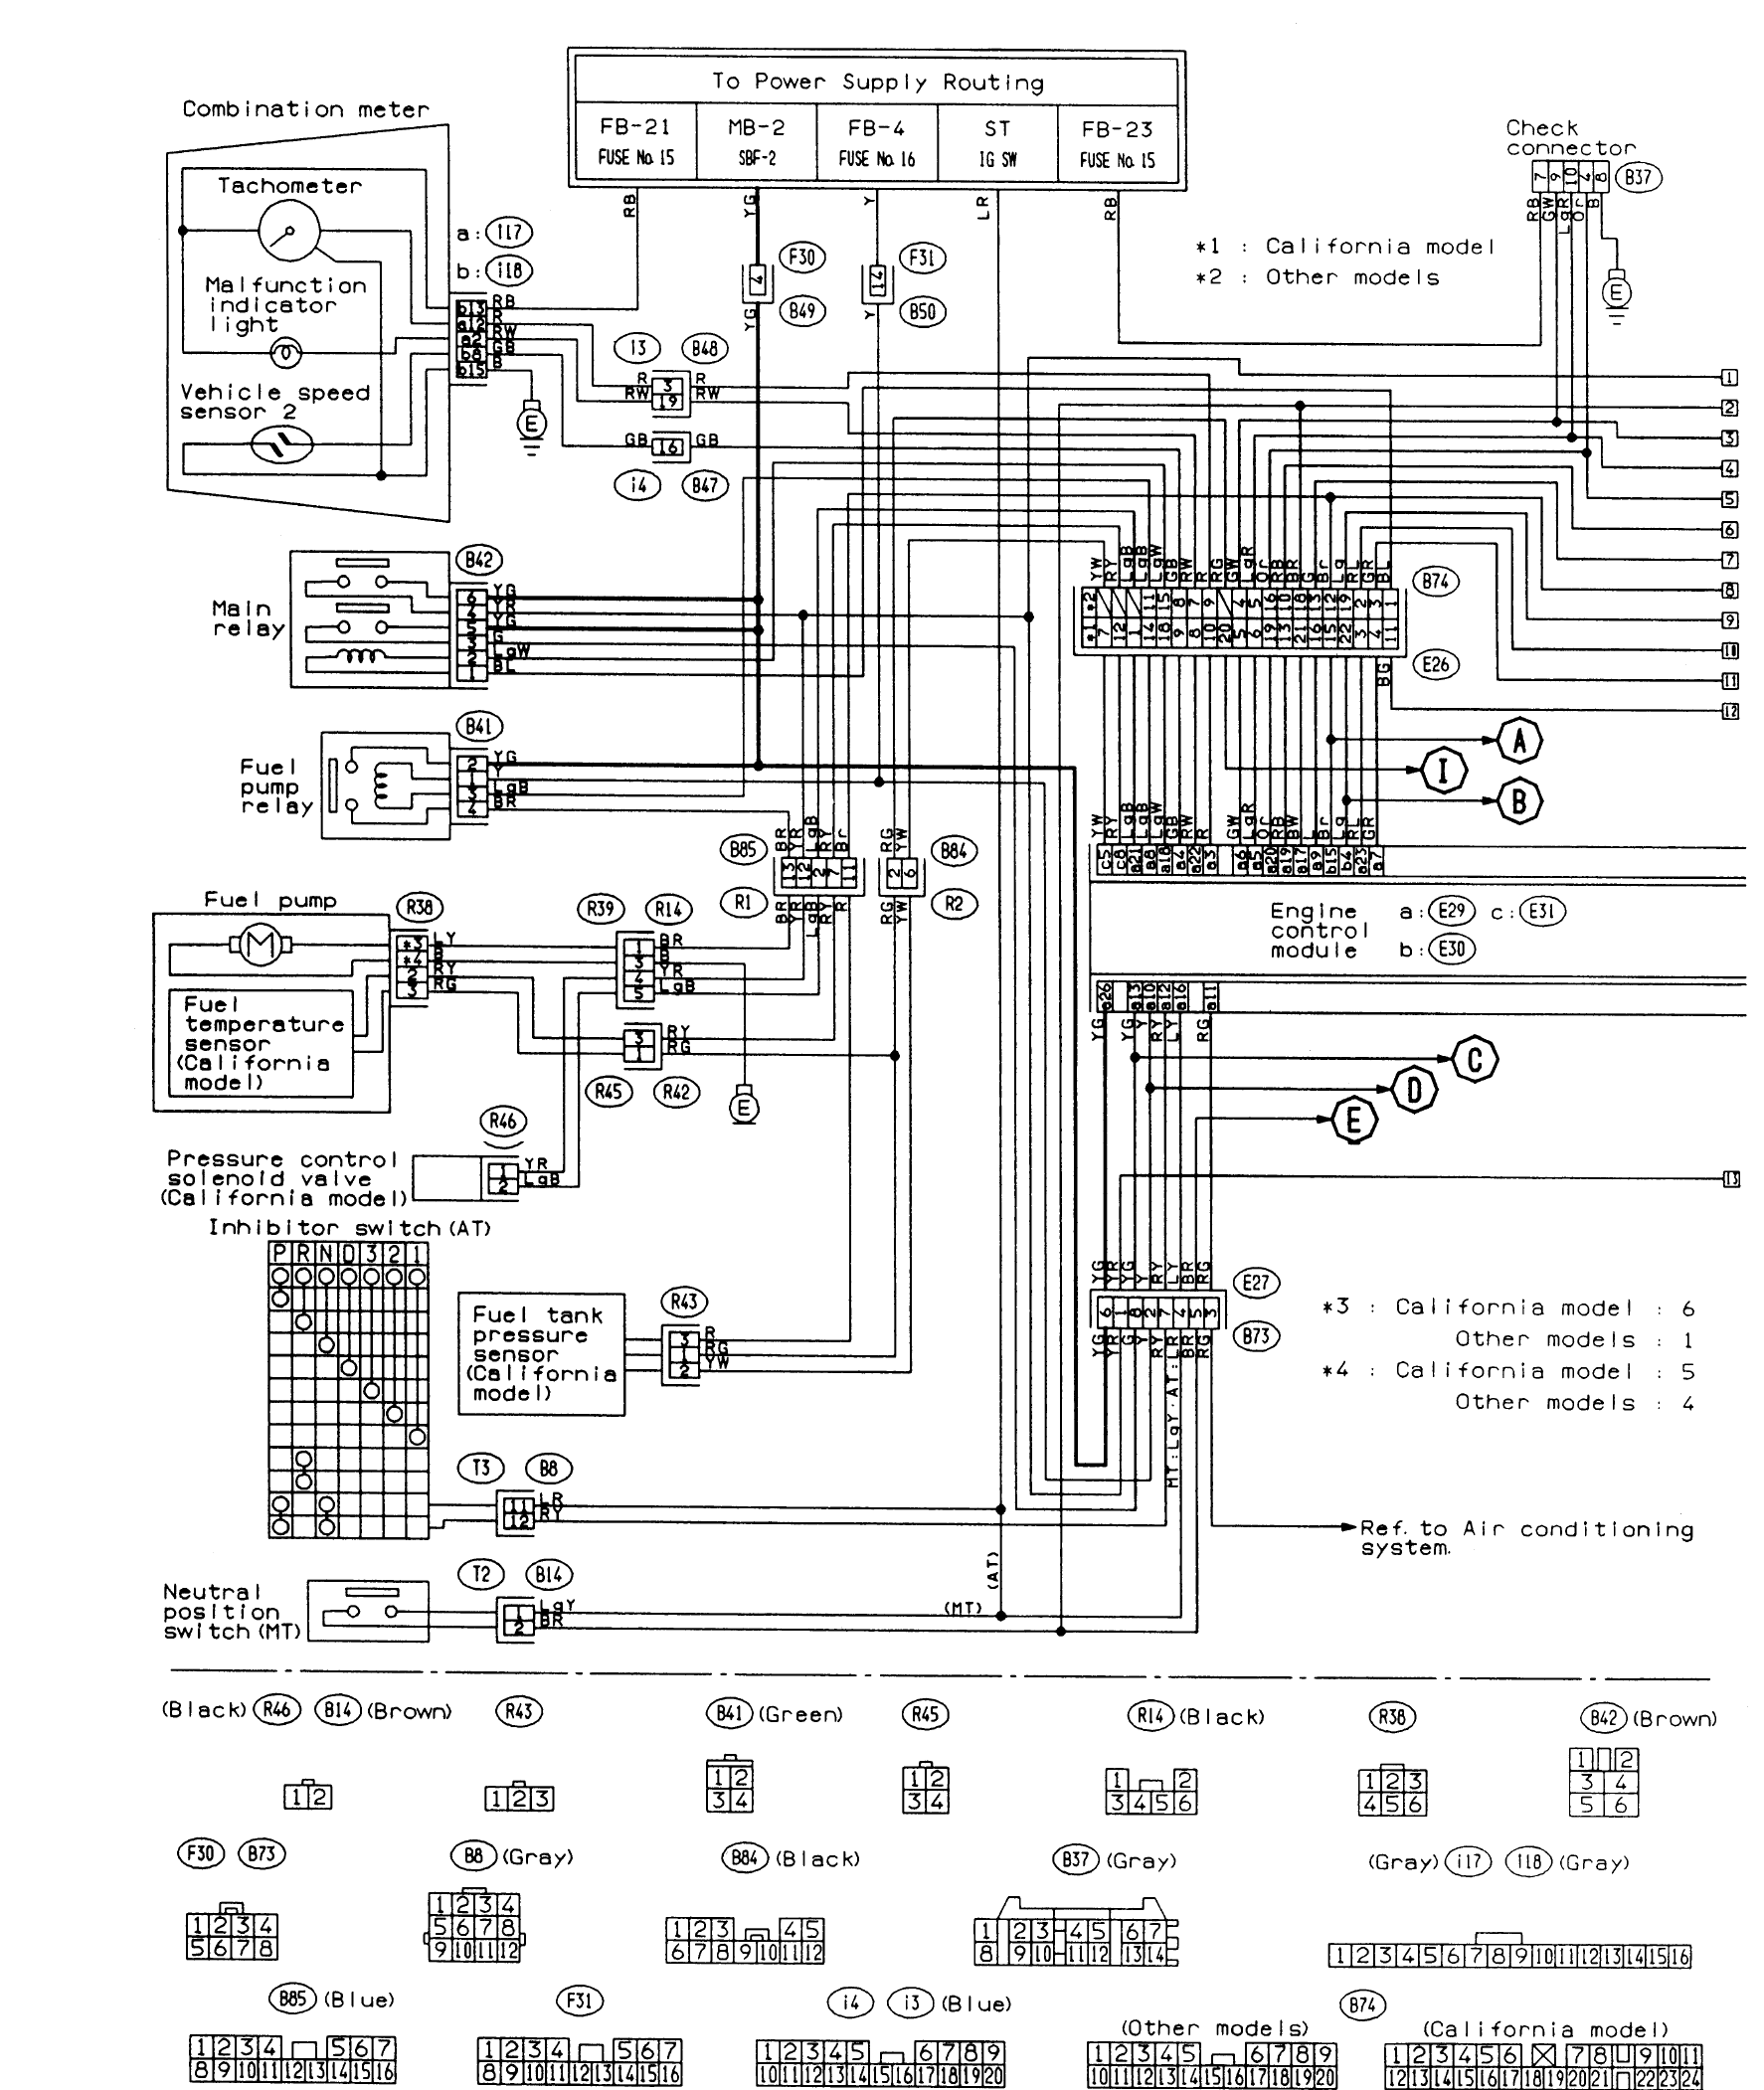 Electrical Diagram For Ac Unit In Subaru Forester